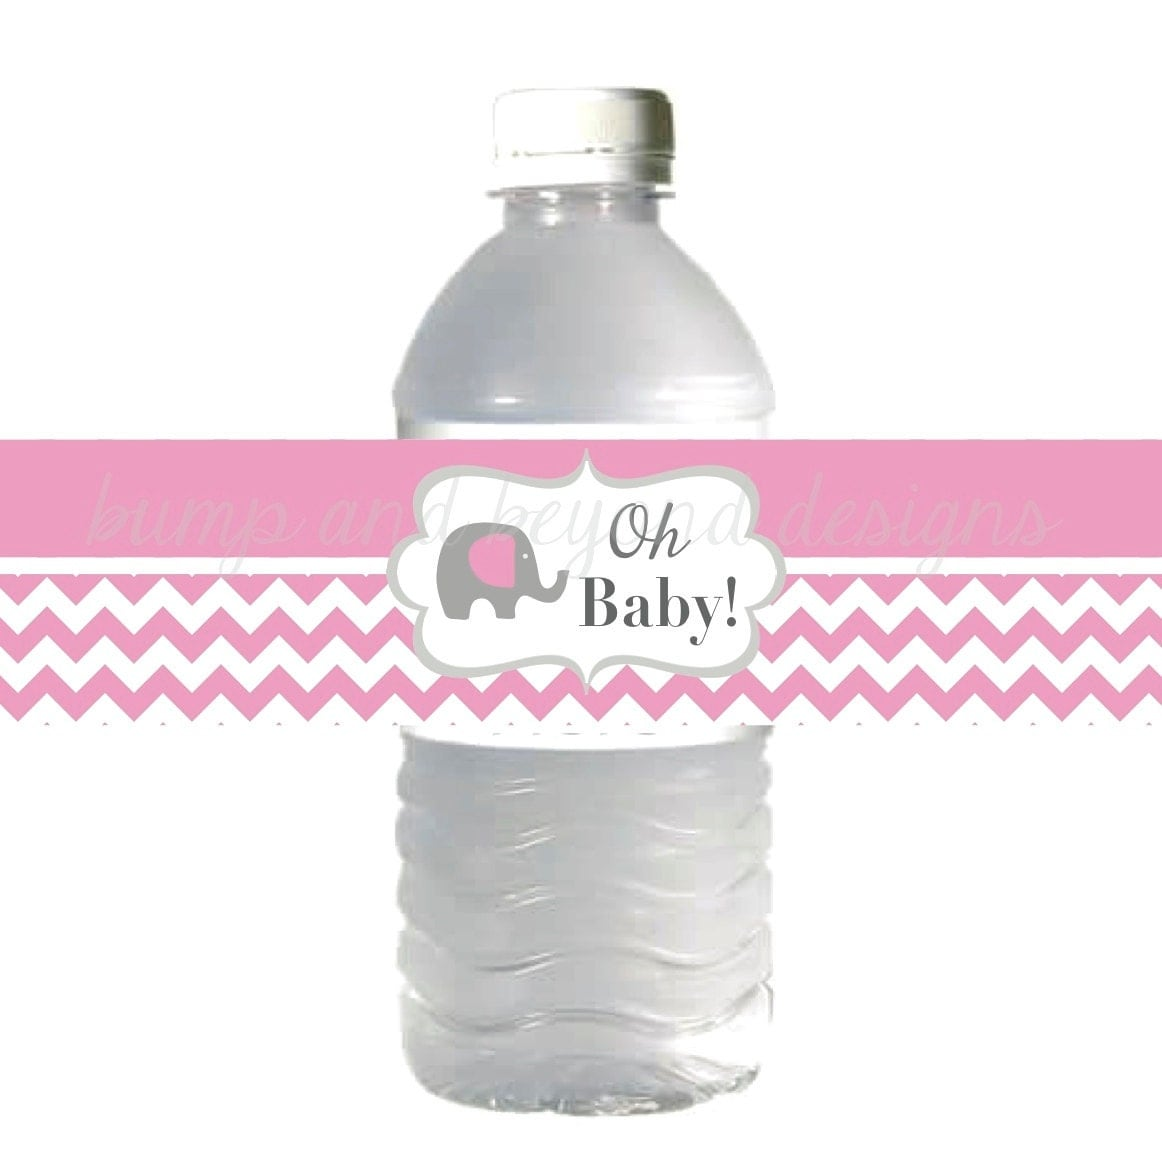 baby shower water bottle labels gum pink grey chevron elephant